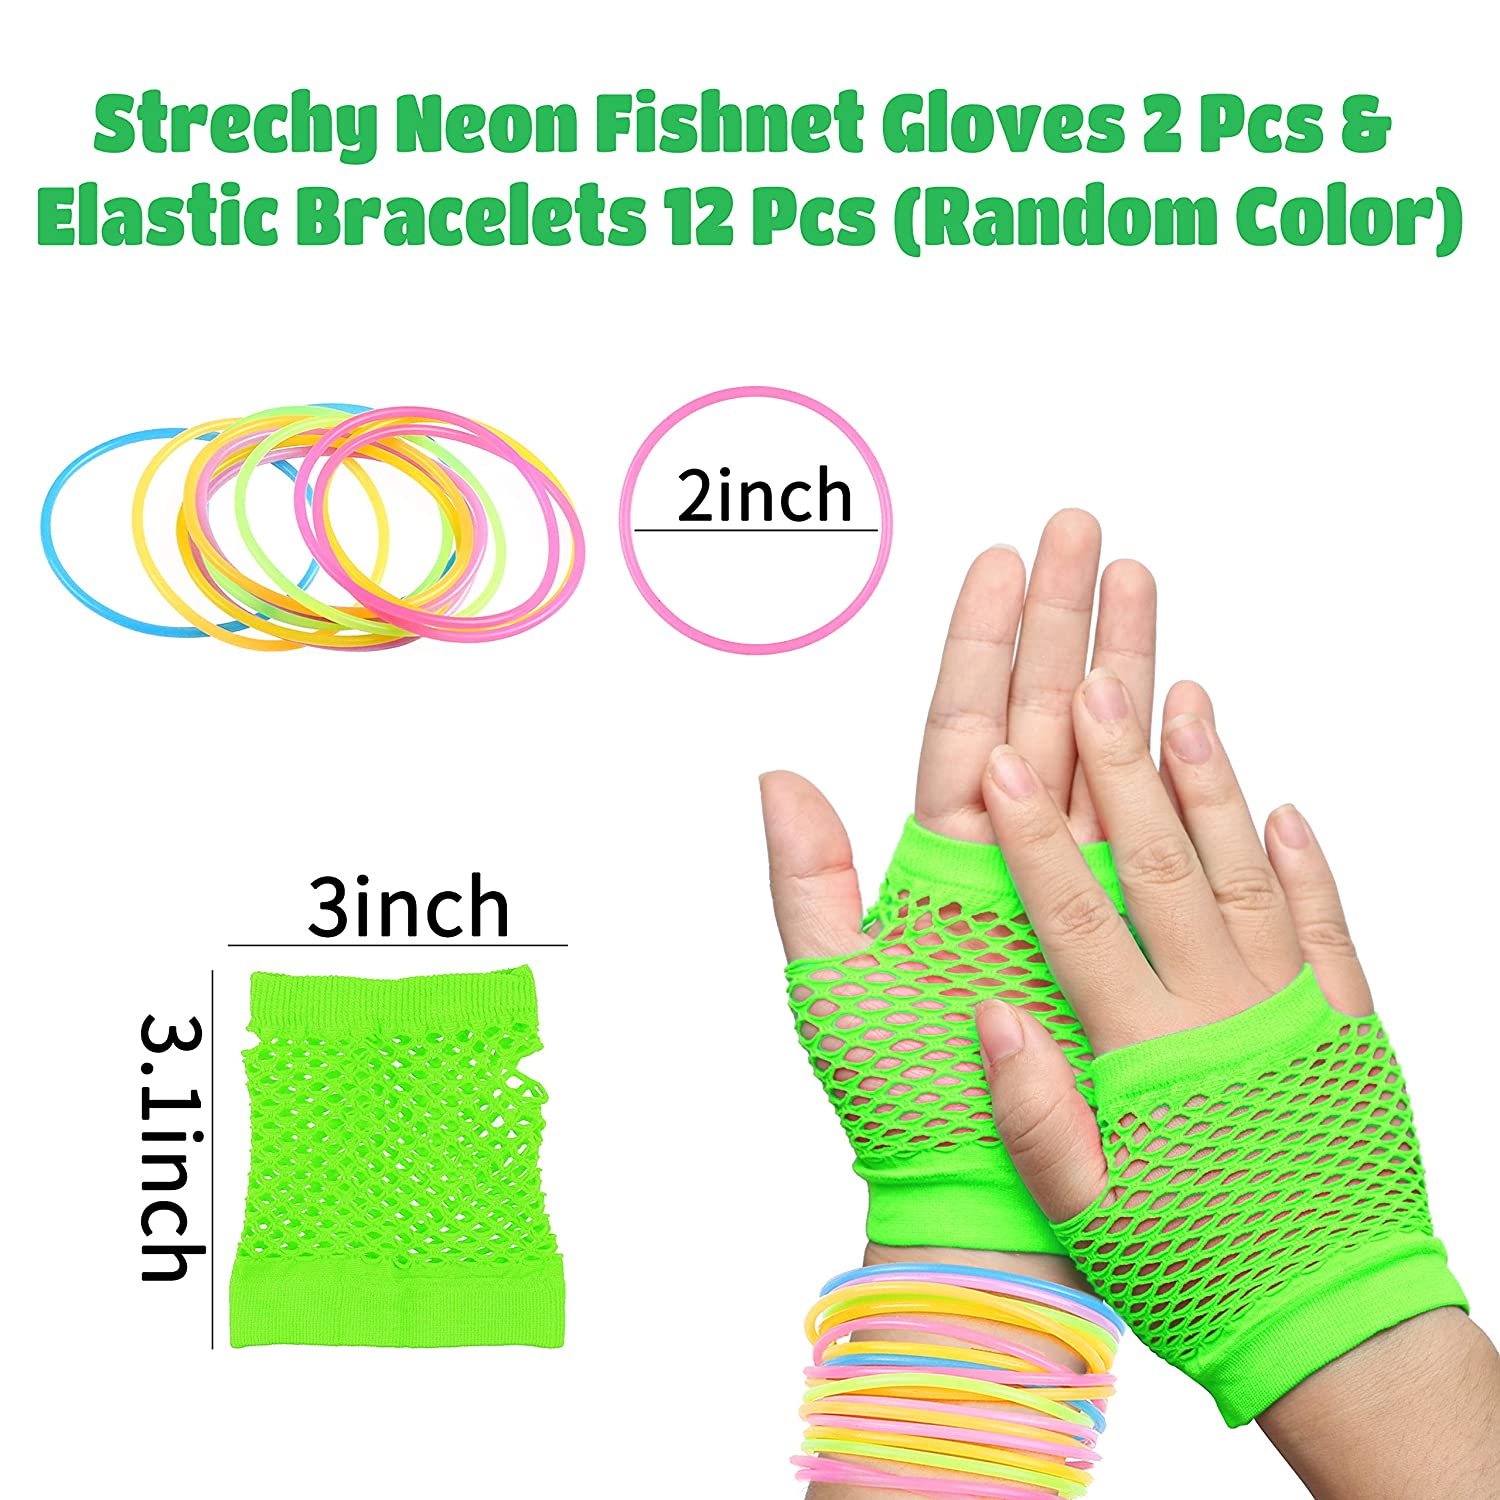 WATINC 22pcs 80s Retro Neon Costume Outfit Accessories for Women 80s Hair Scrunchies for Hair Green Shutter Glasses Fingerless Fishnet Gloves Flash Earrings Jelly Bracelets Necklace Party Supplies